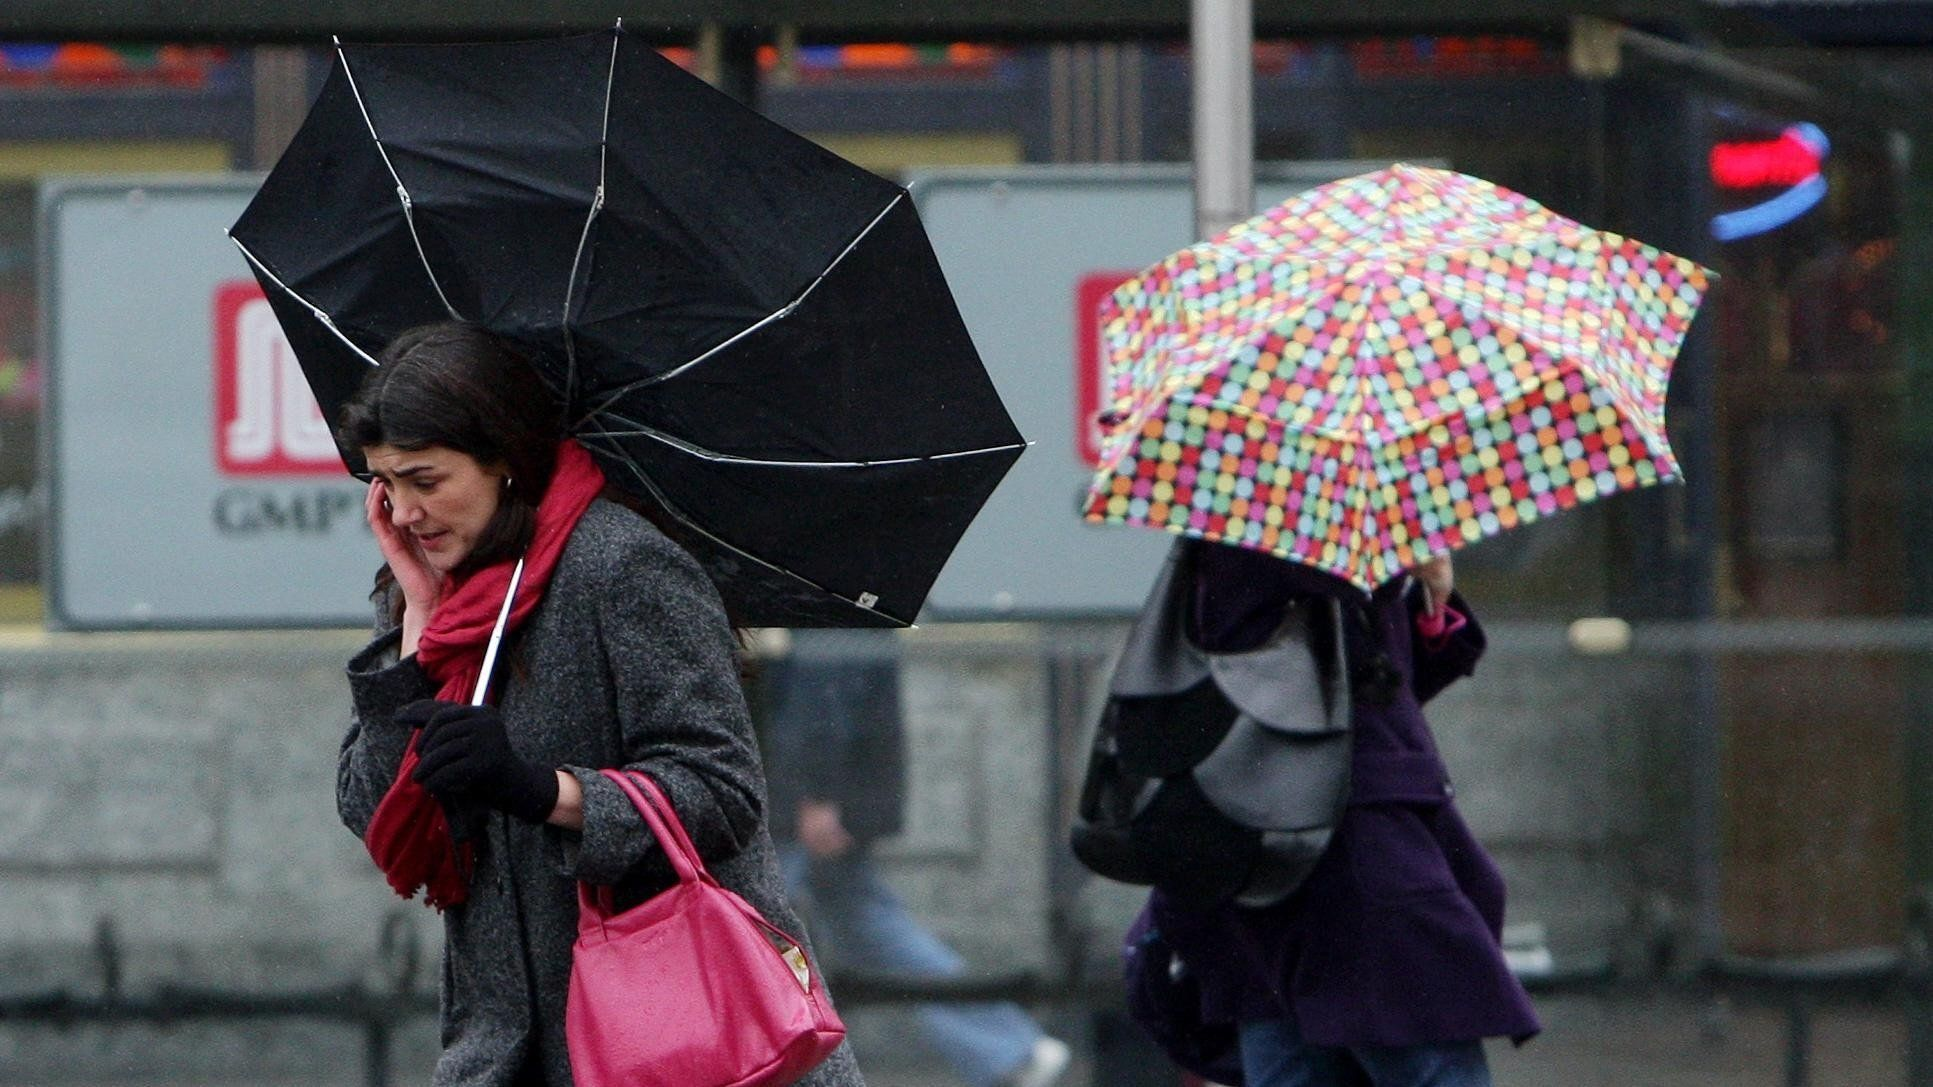 Met Office issues yellow weather warnings for snow and wind across Wales